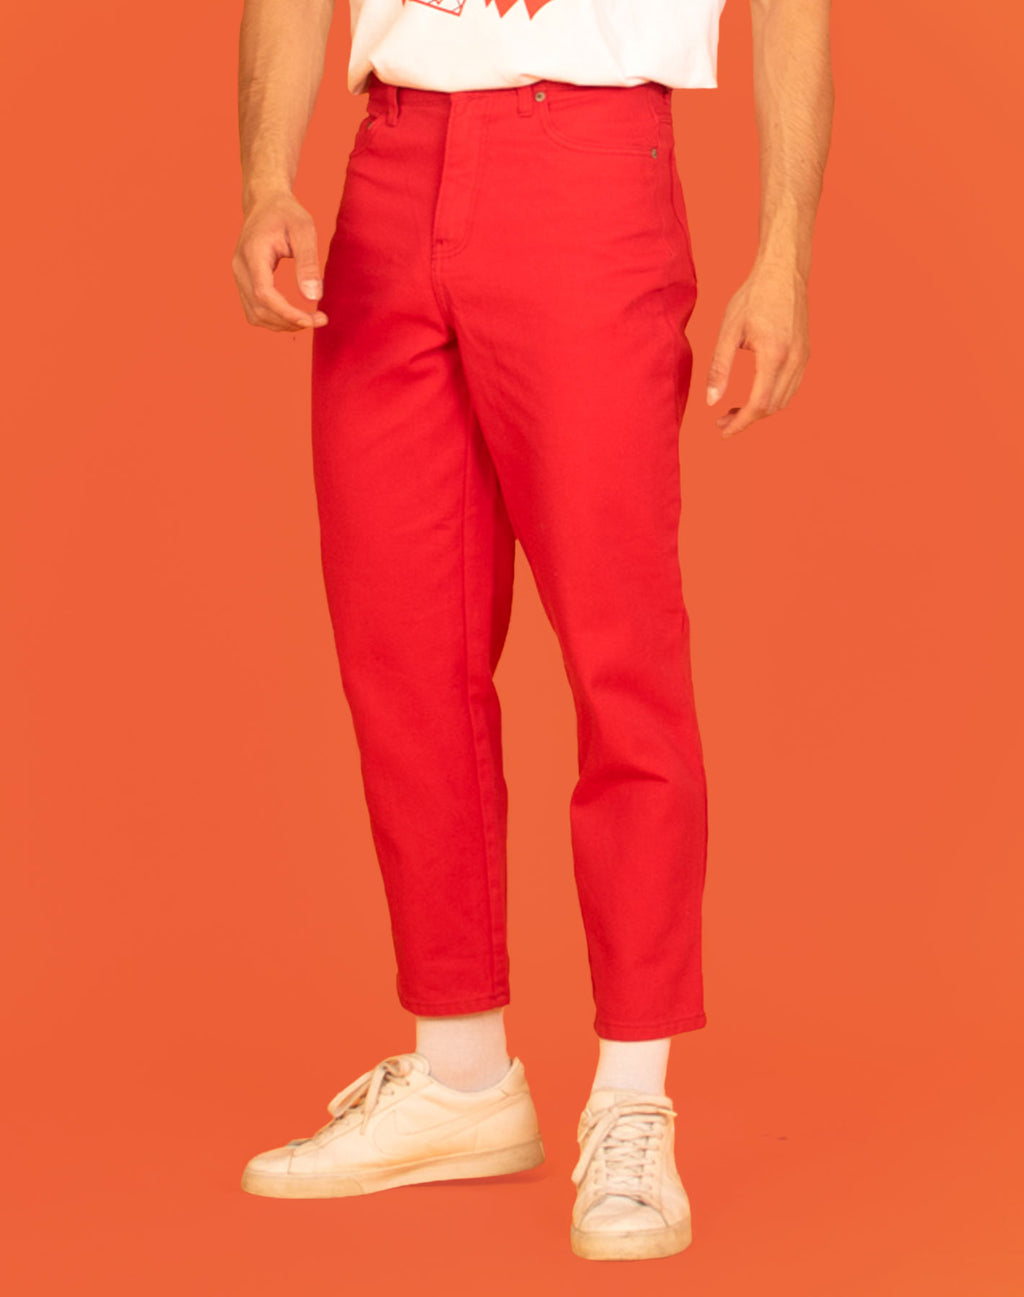 RED TAPERED JEANS